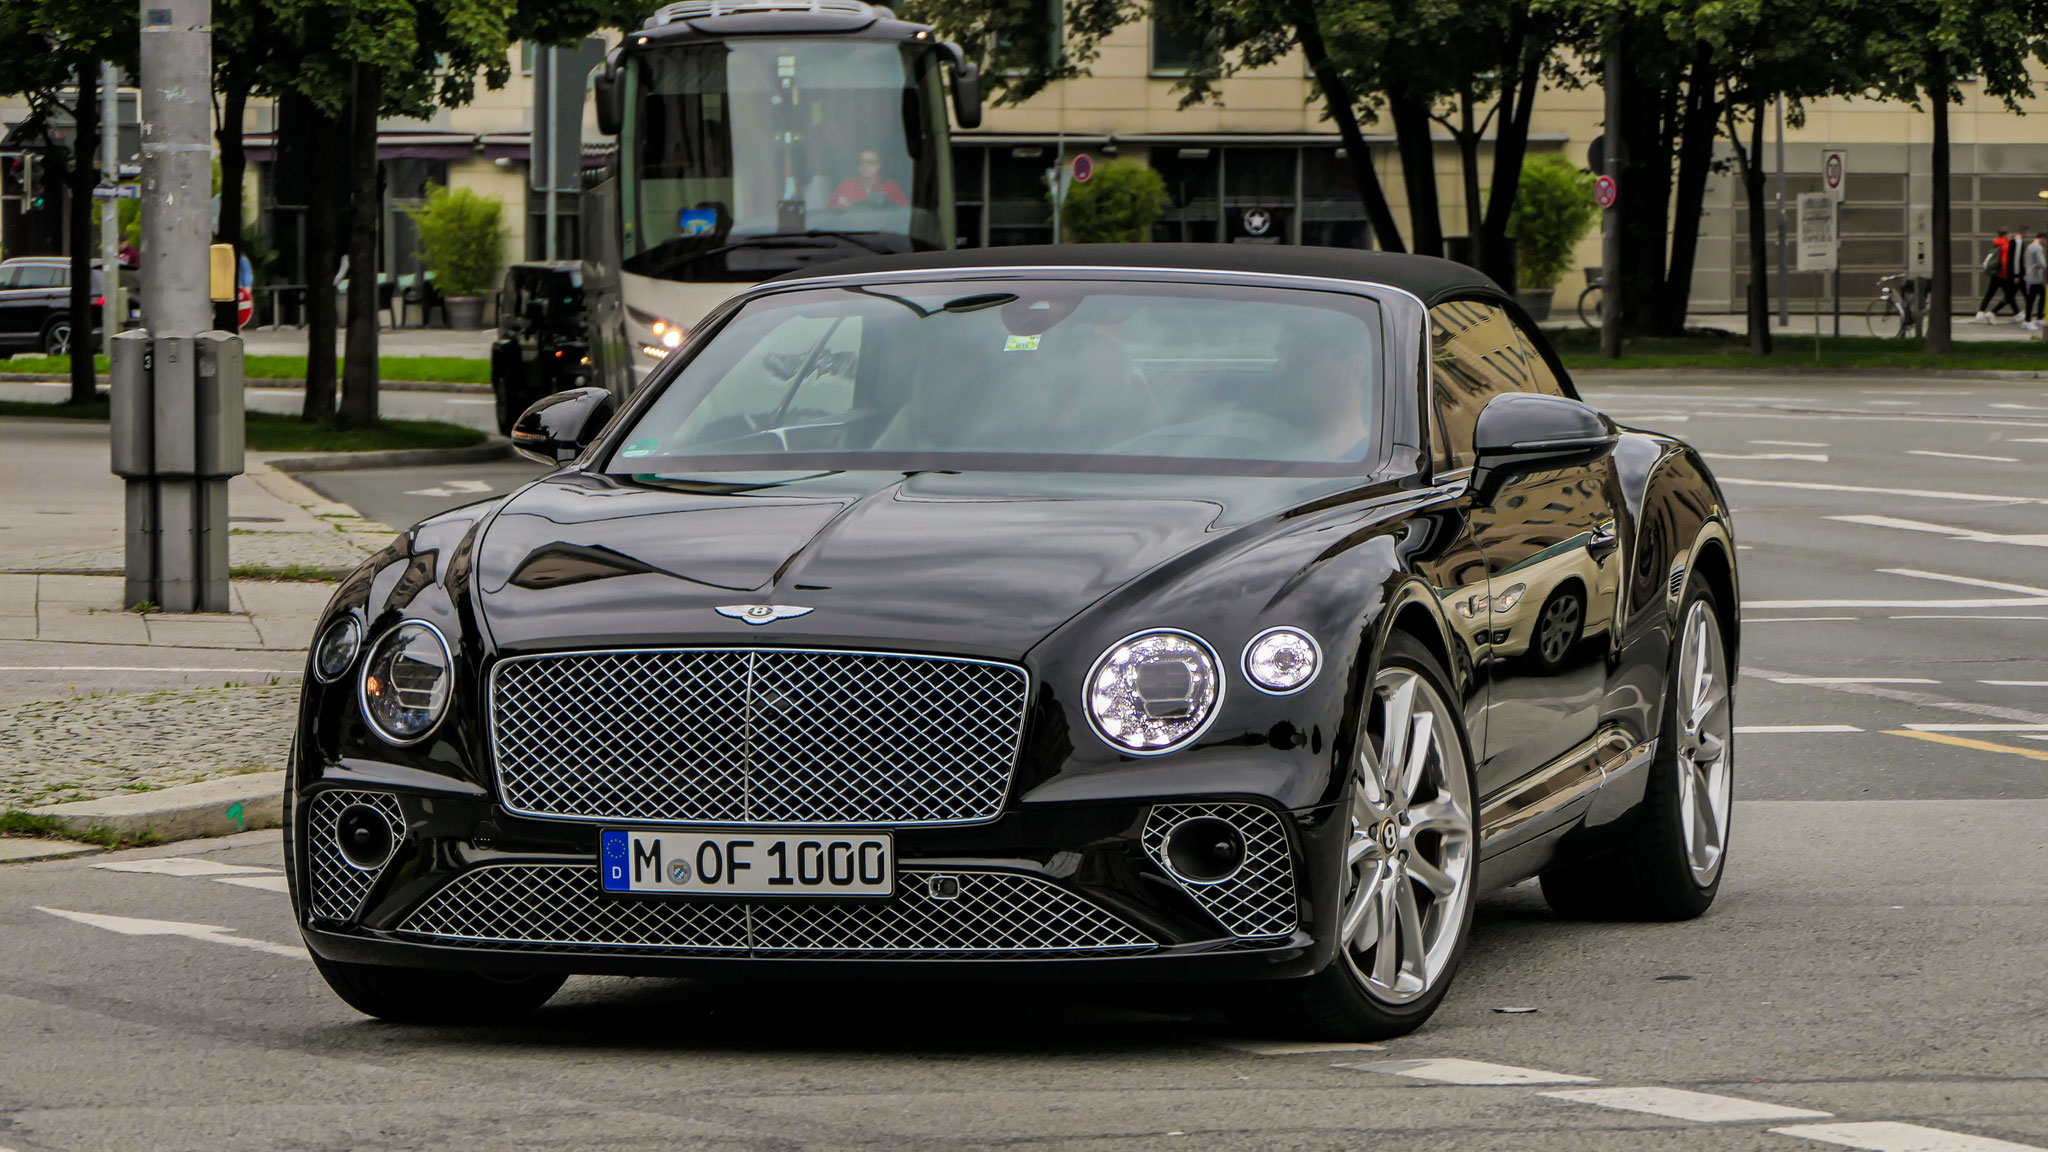 Bentley Continental GTC - M-OF-1000